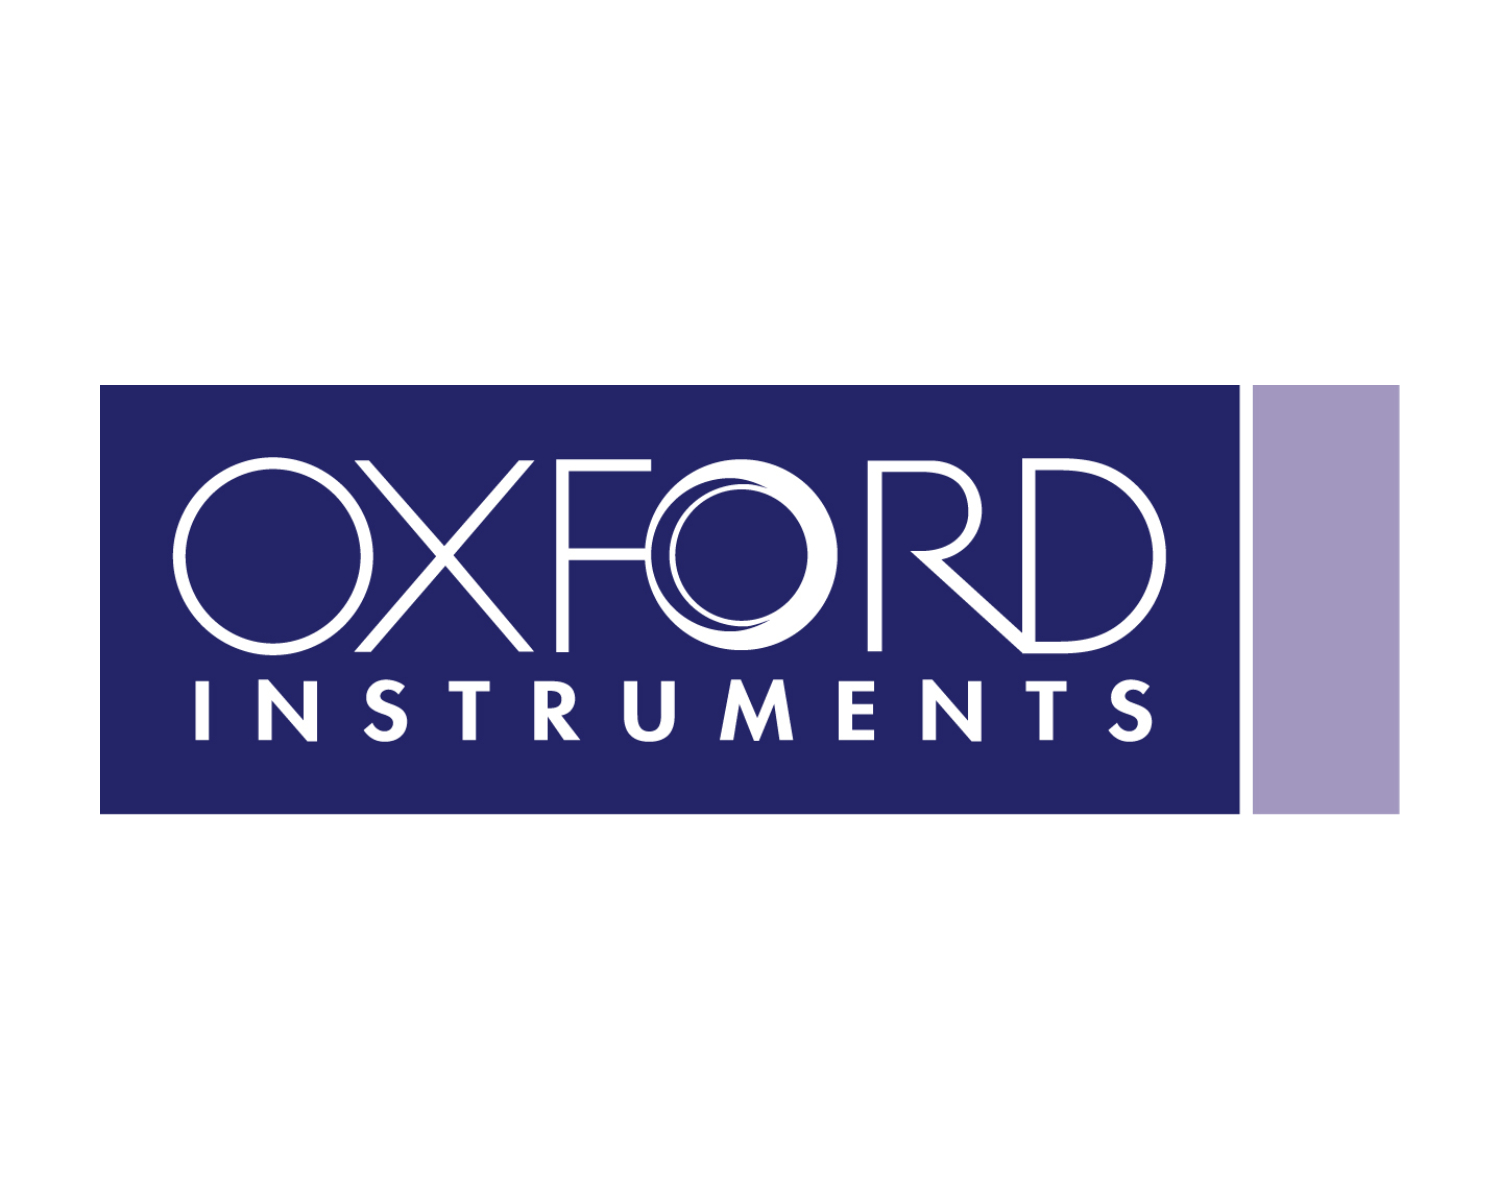 Oxford Instruments